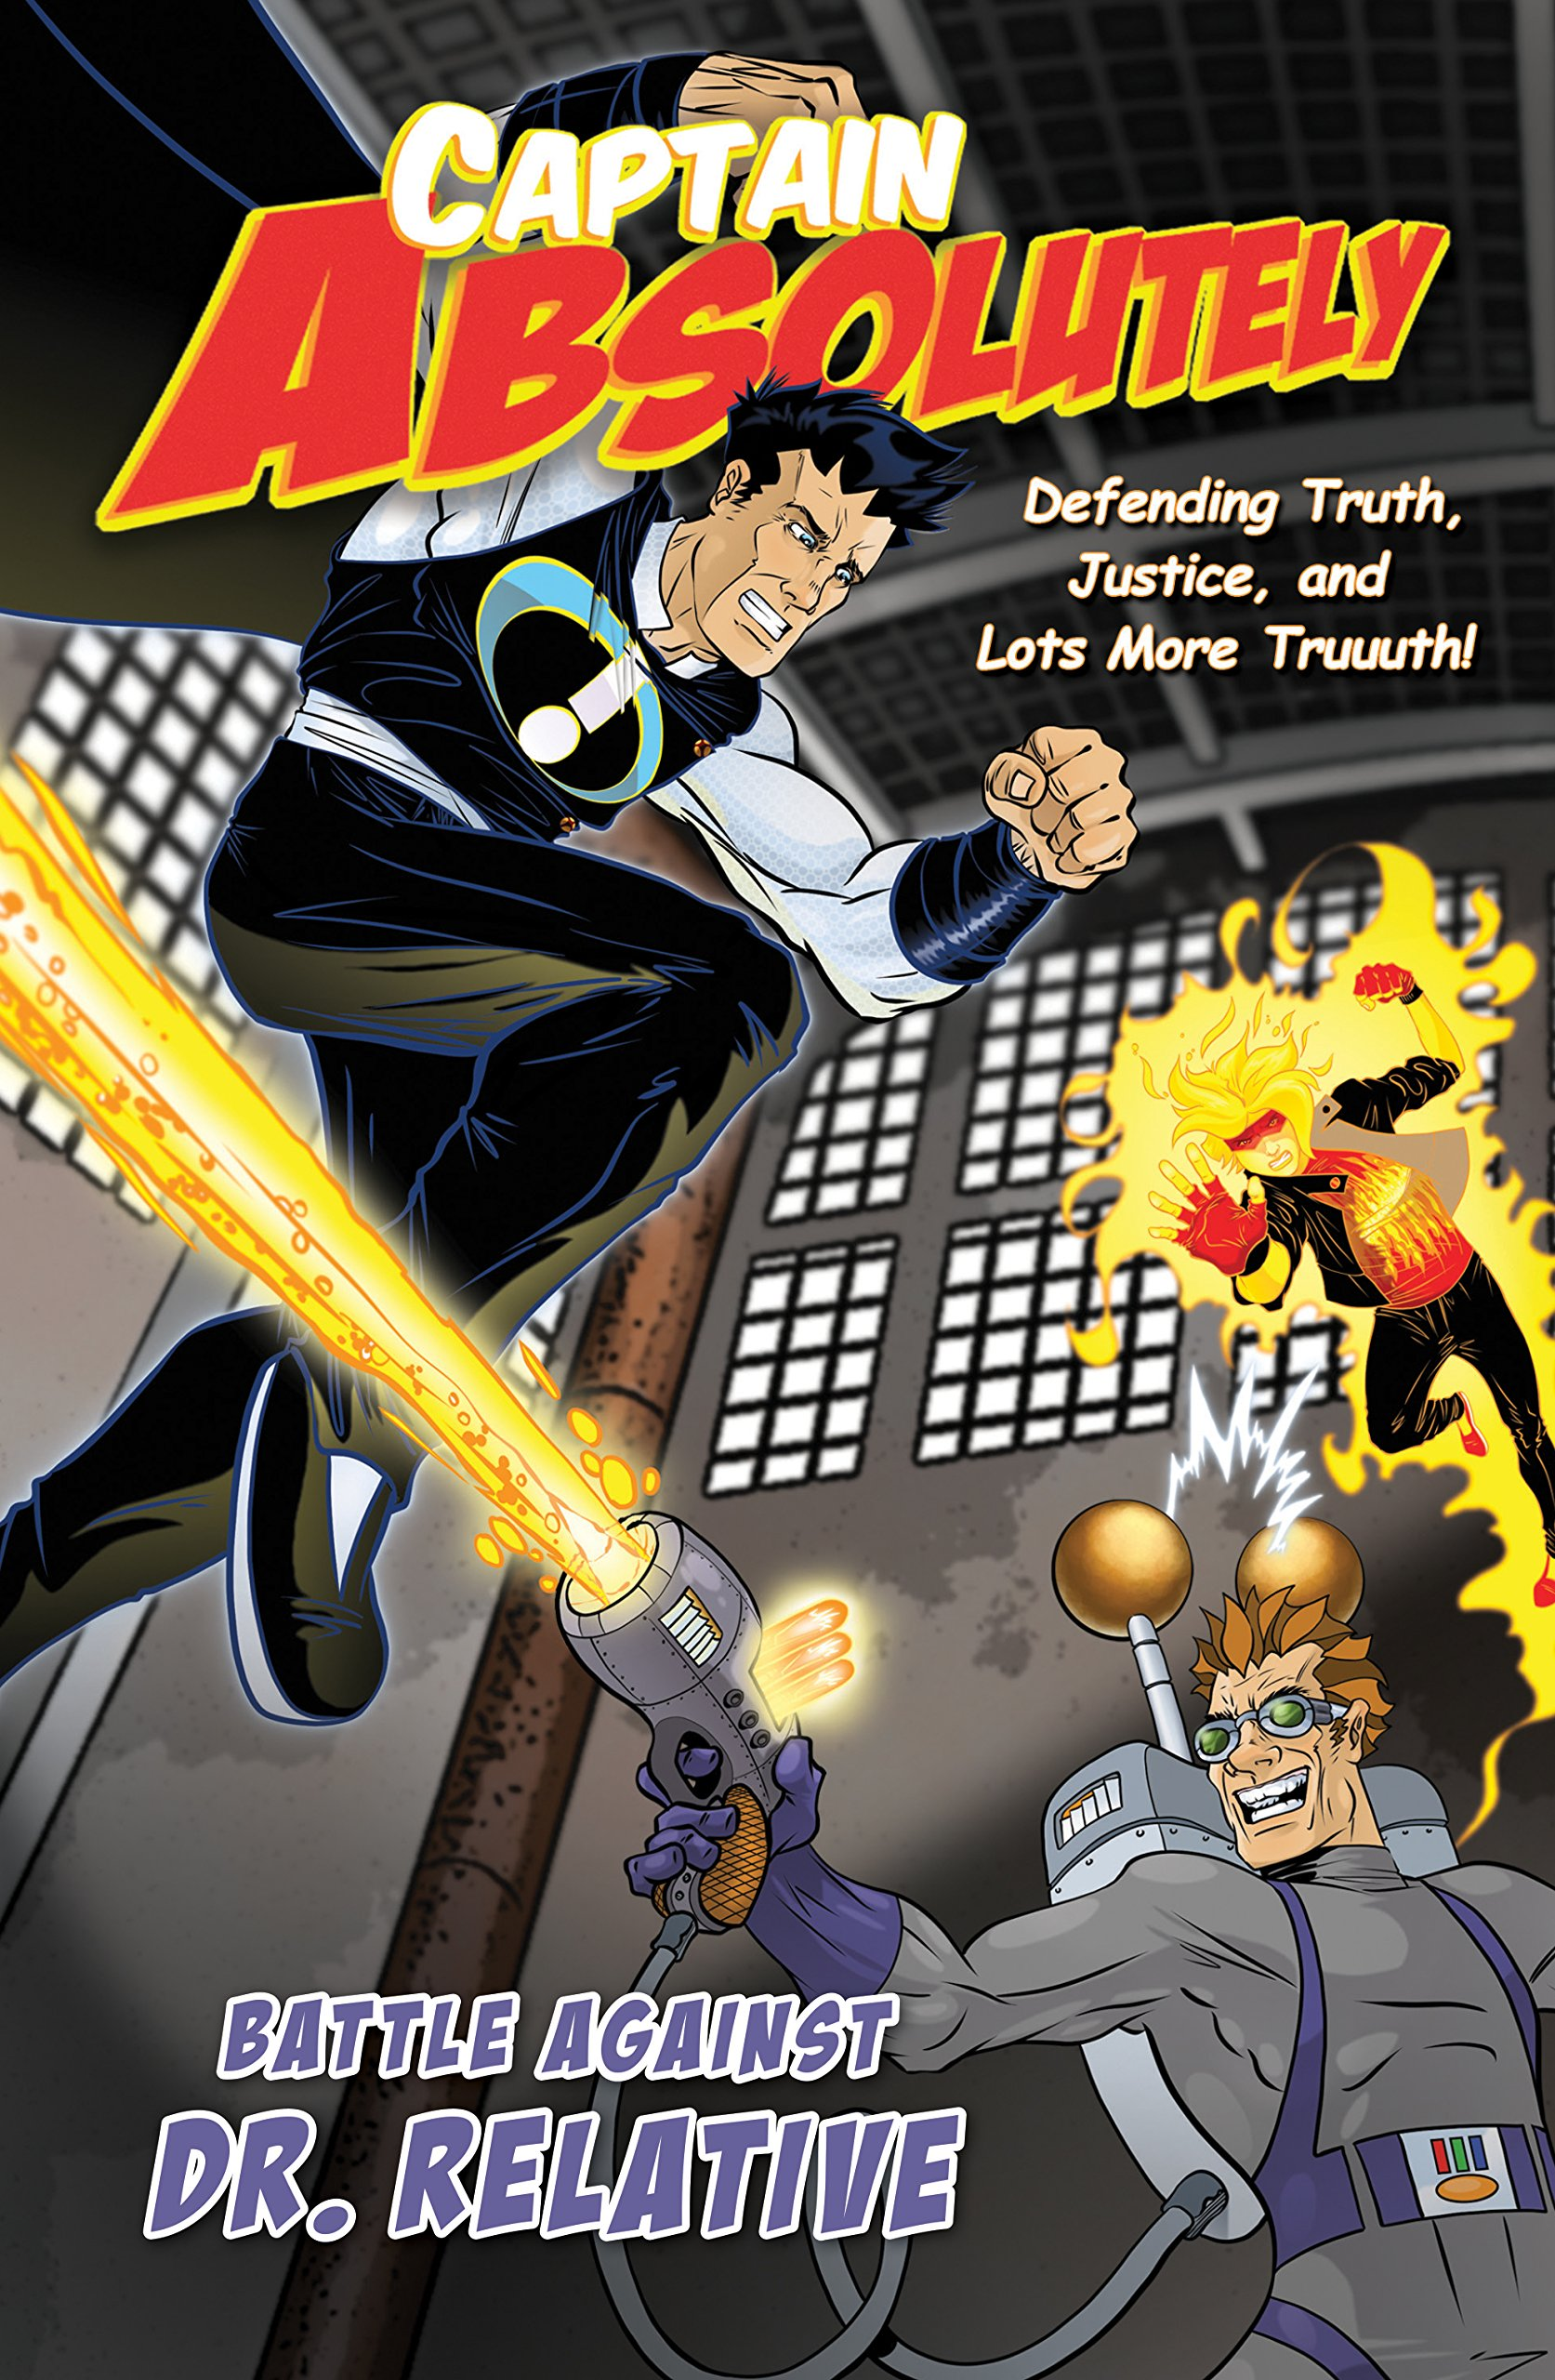 Read Online Captain Absolutely: Defending Truth, Justice, and Lots More Truuuth! (Adventures in Odyssey Books) pdf epub